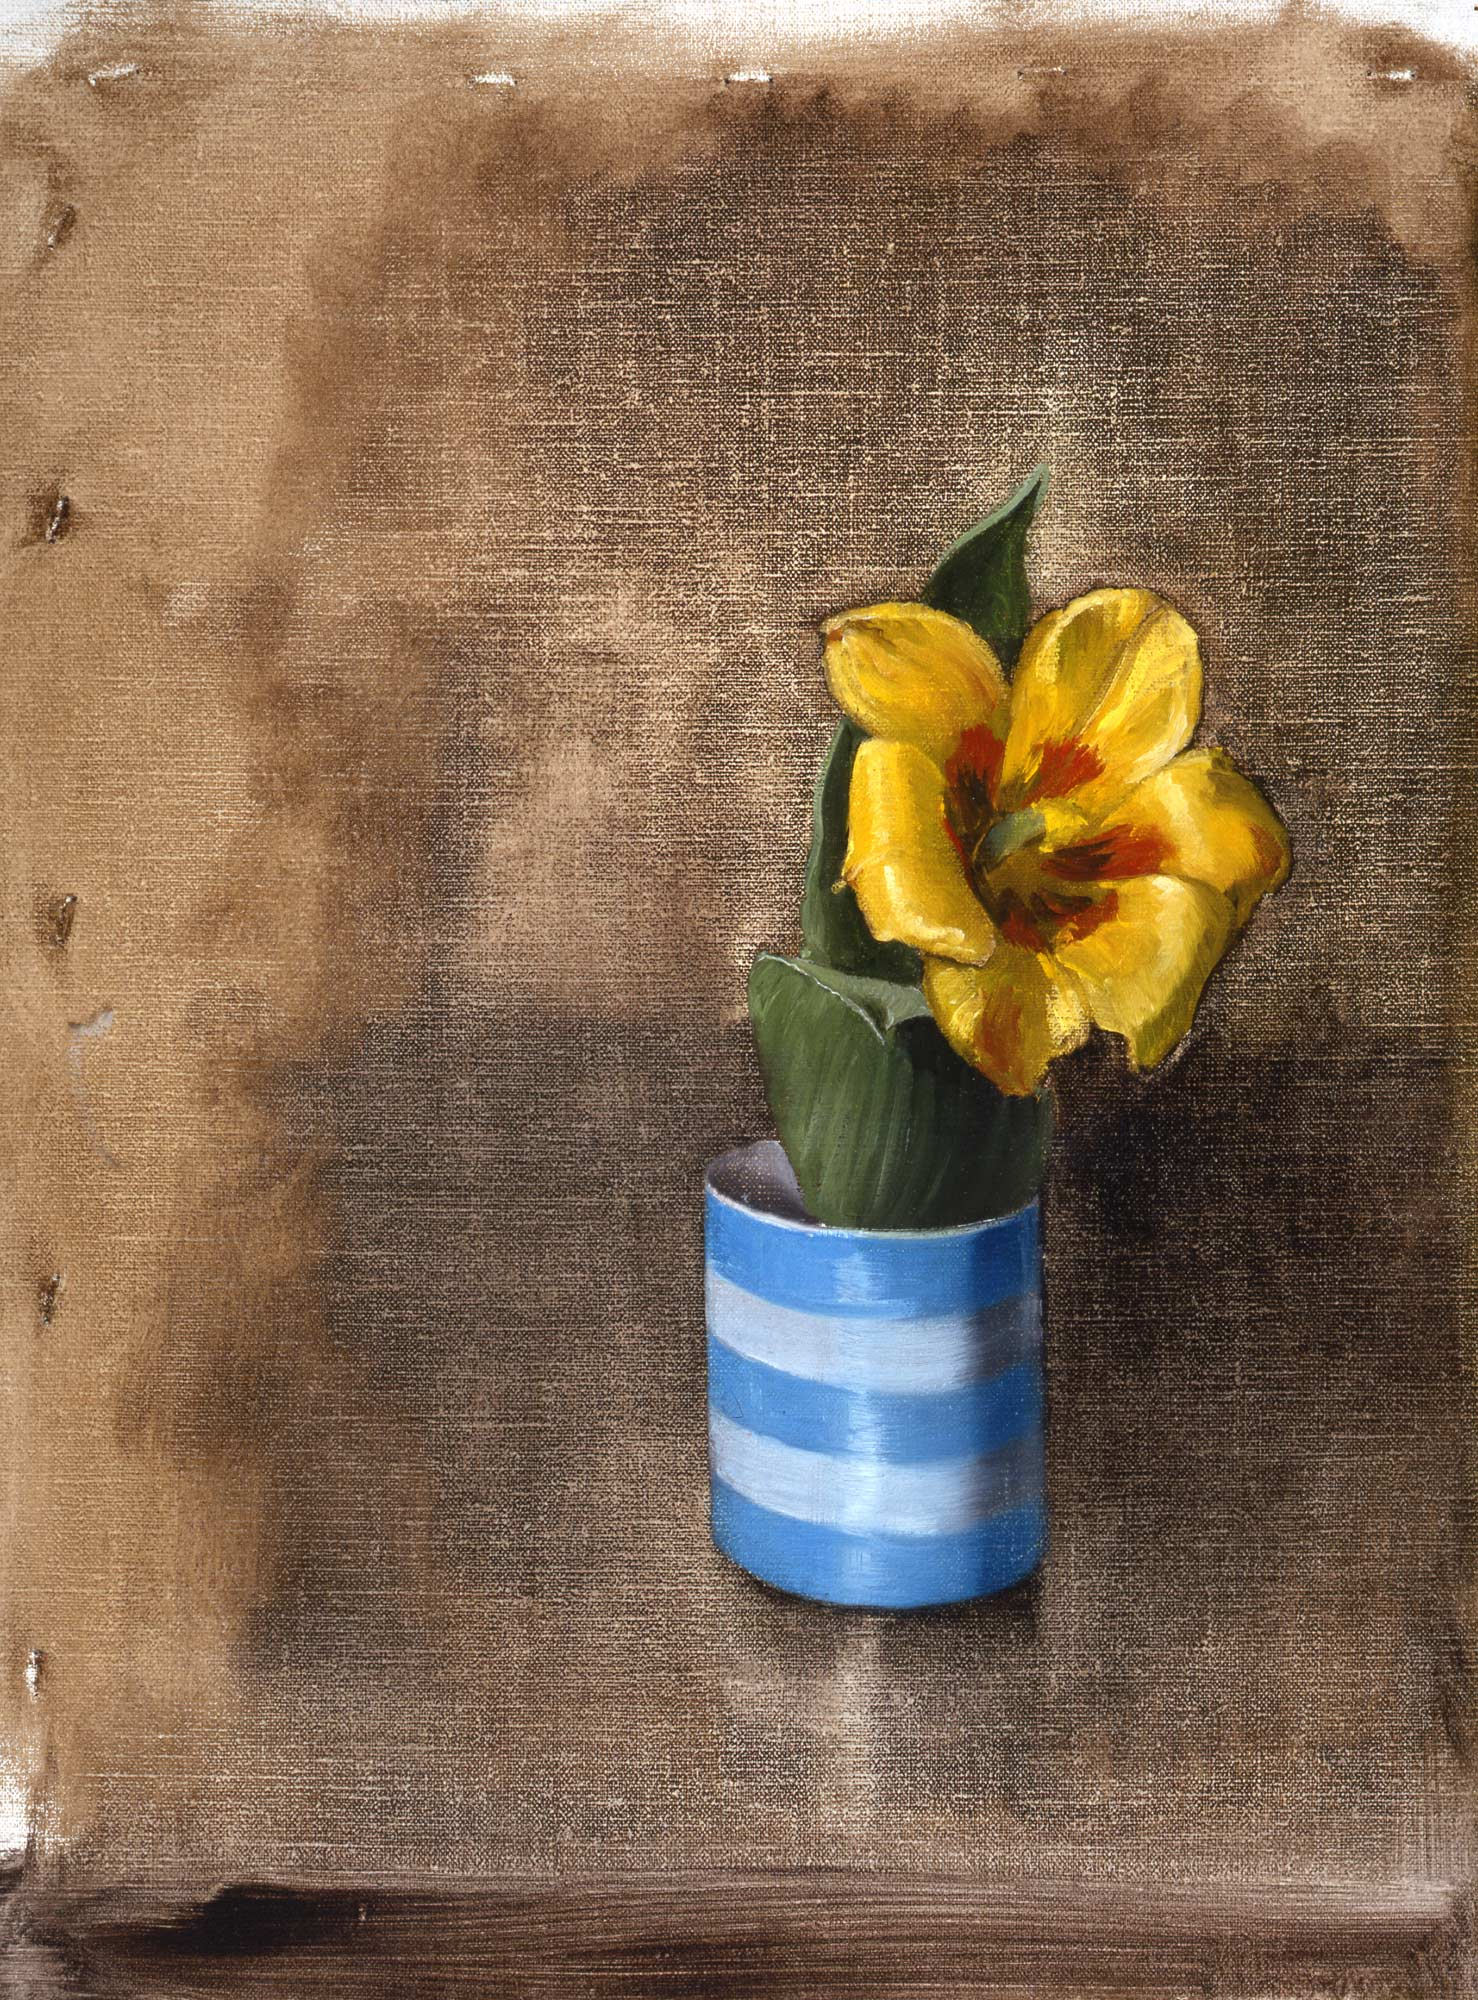 Study of a Tulip in a Cup